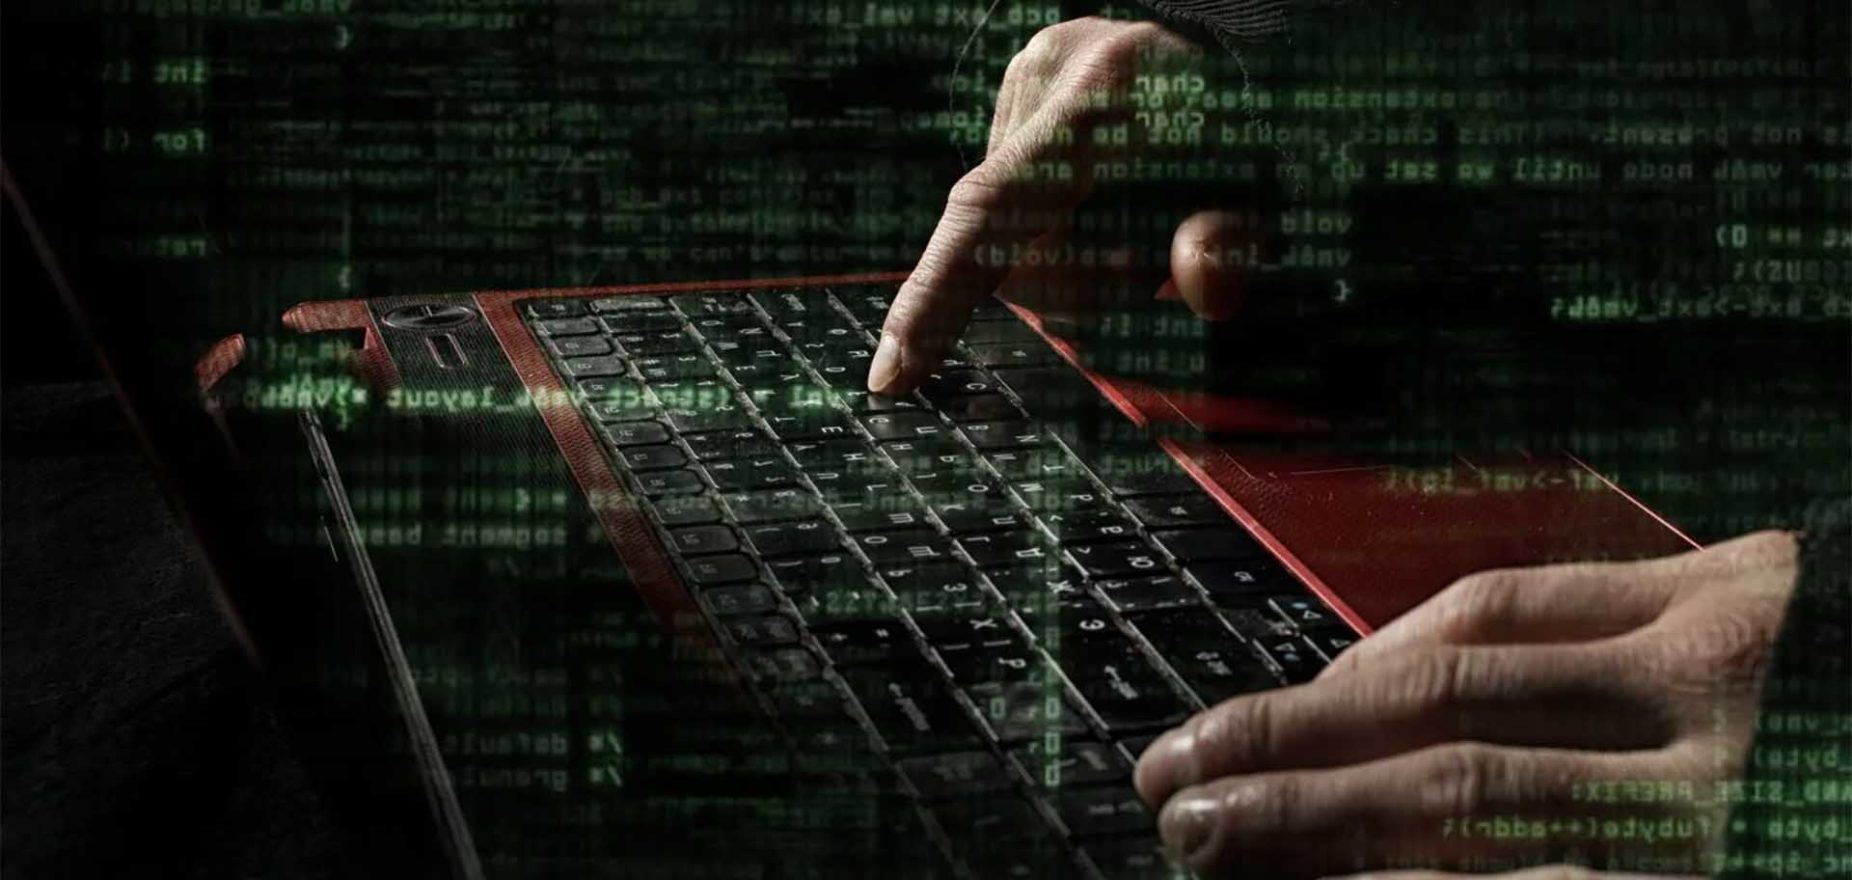 Altsbit Crypto Exchange Gets Hacked, 'Almost All Funds' Have Gone